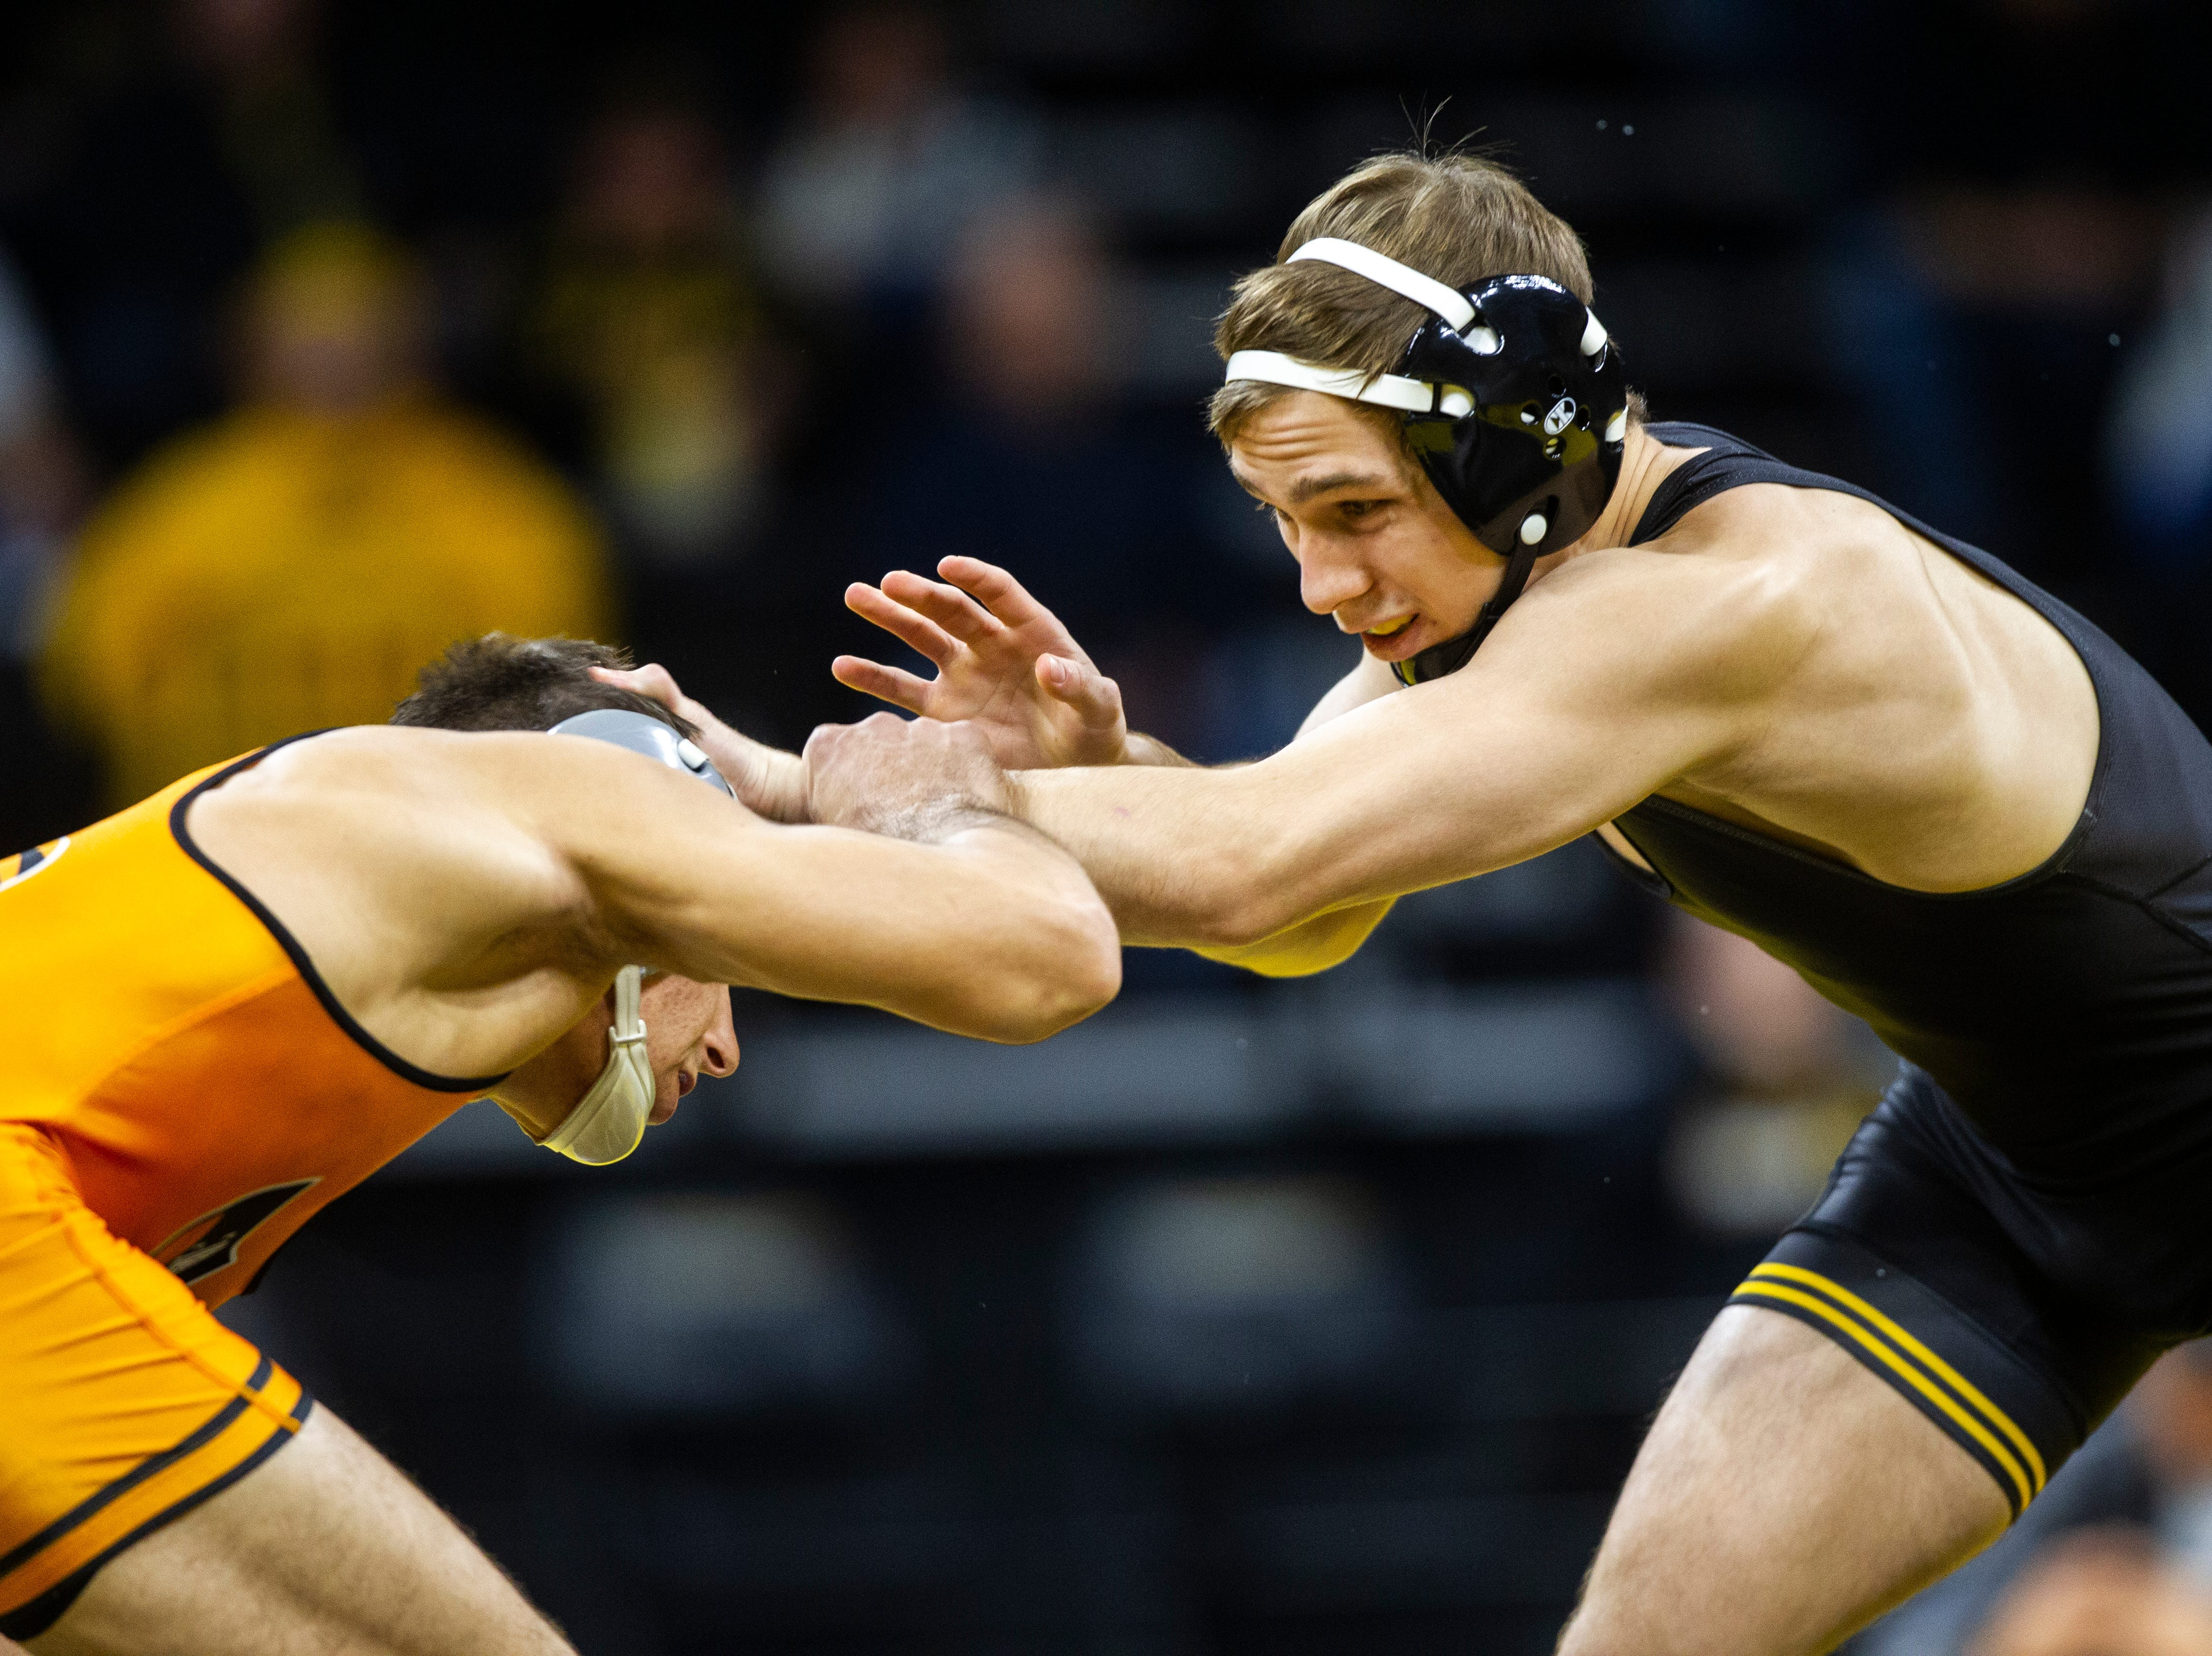 Iowa's Spencer Lee (right) wrestles Princeton's Patrick Glory at 125 during an NCAA wrestle dual on Friday, Nov. 16, 2018, at Carver-Hawkeye Arena in Iowa City.